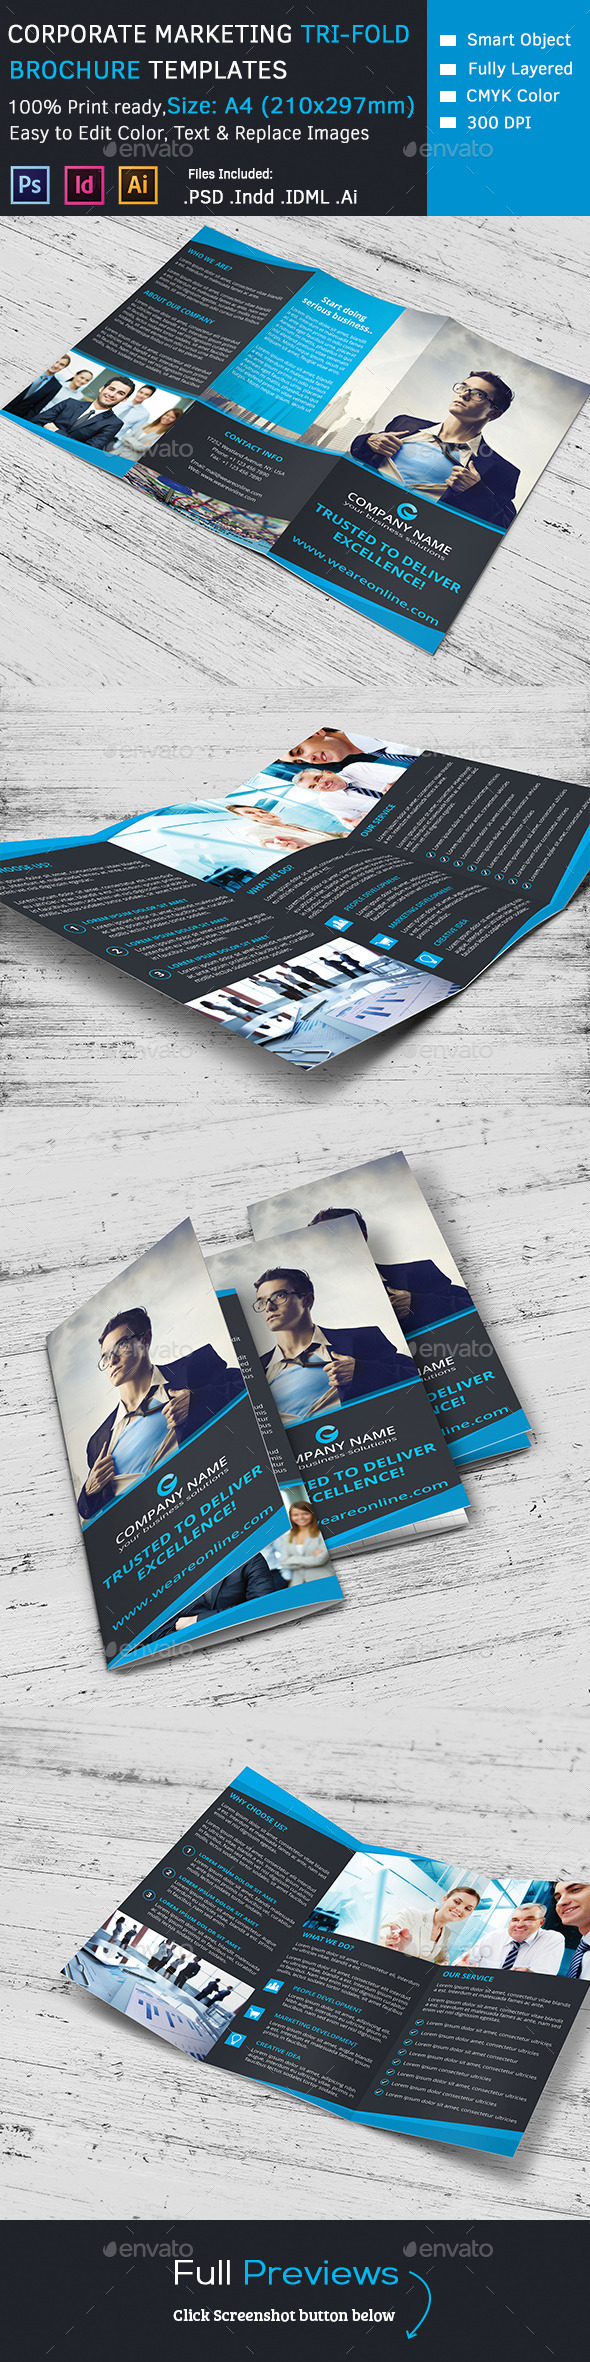 GraphicRiver Corporate Marketing Tri-Fold Brochure 9686823